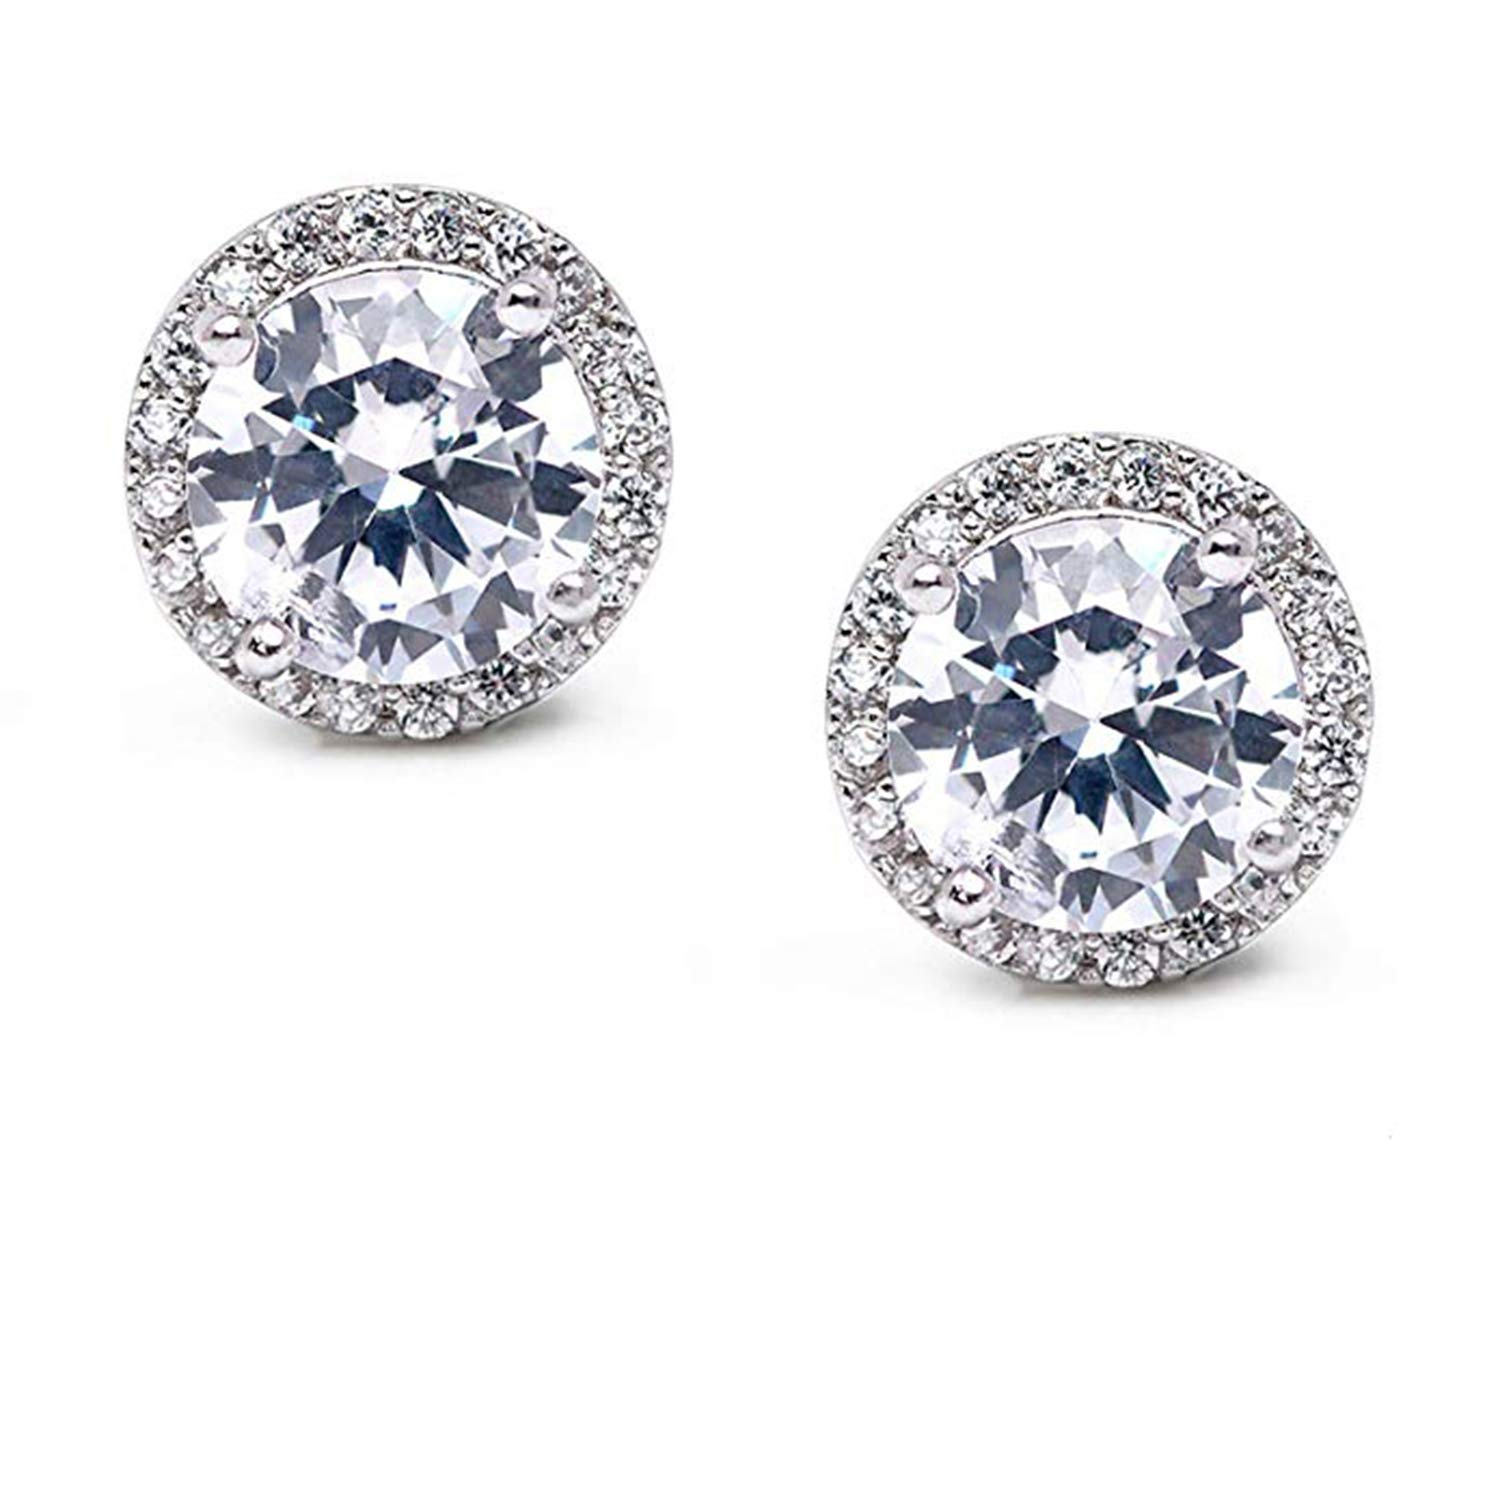 14K Gold Plated Simulated Diamond Studded Earrings For Womens Girls Party Daily Wear Jewellery